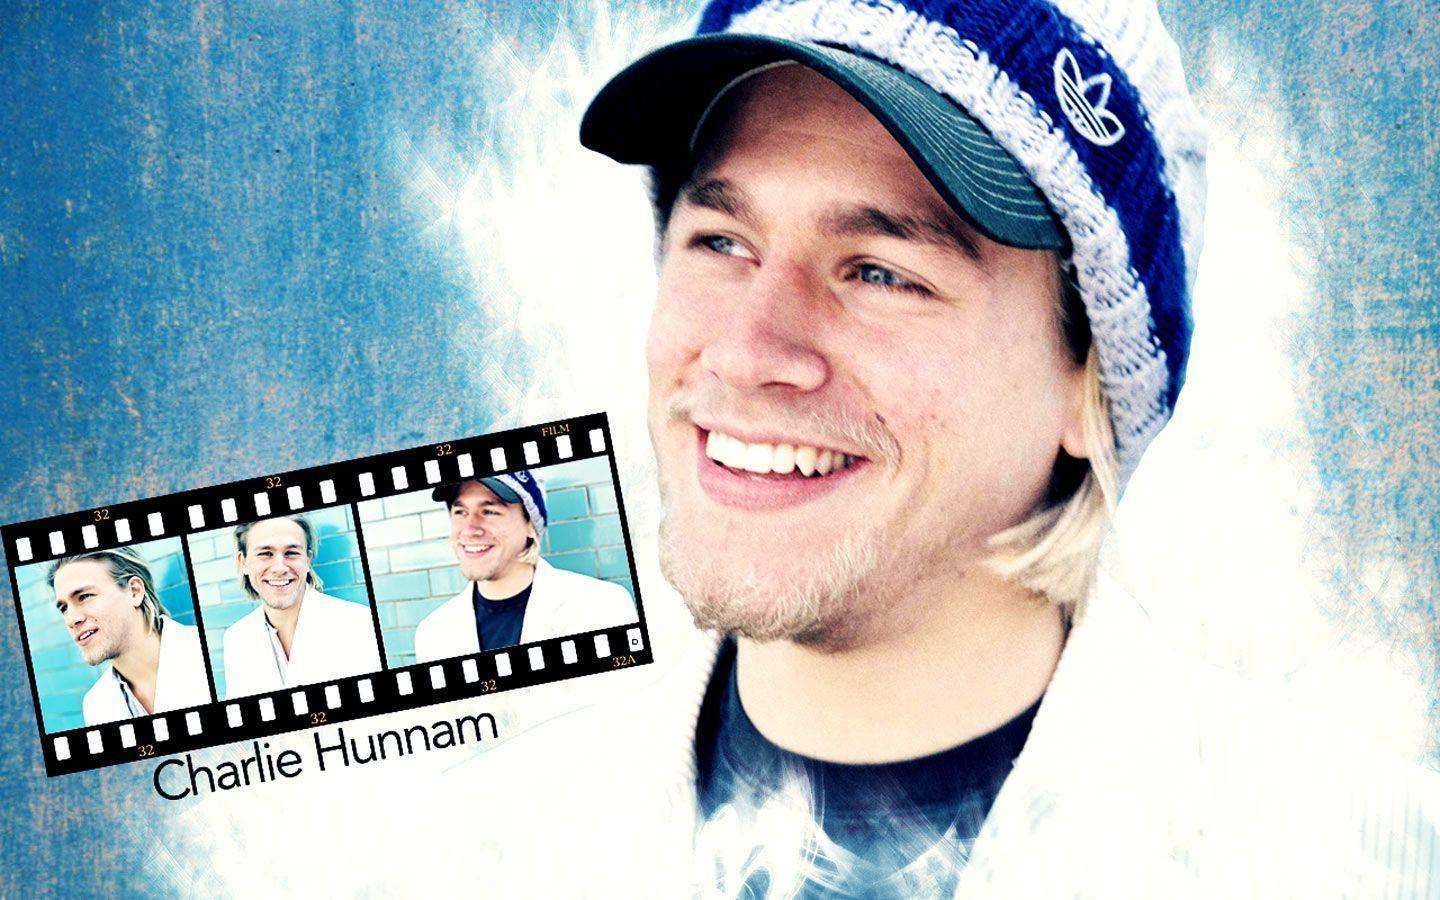 Charlie Hunnam Wallpapers 1440x900